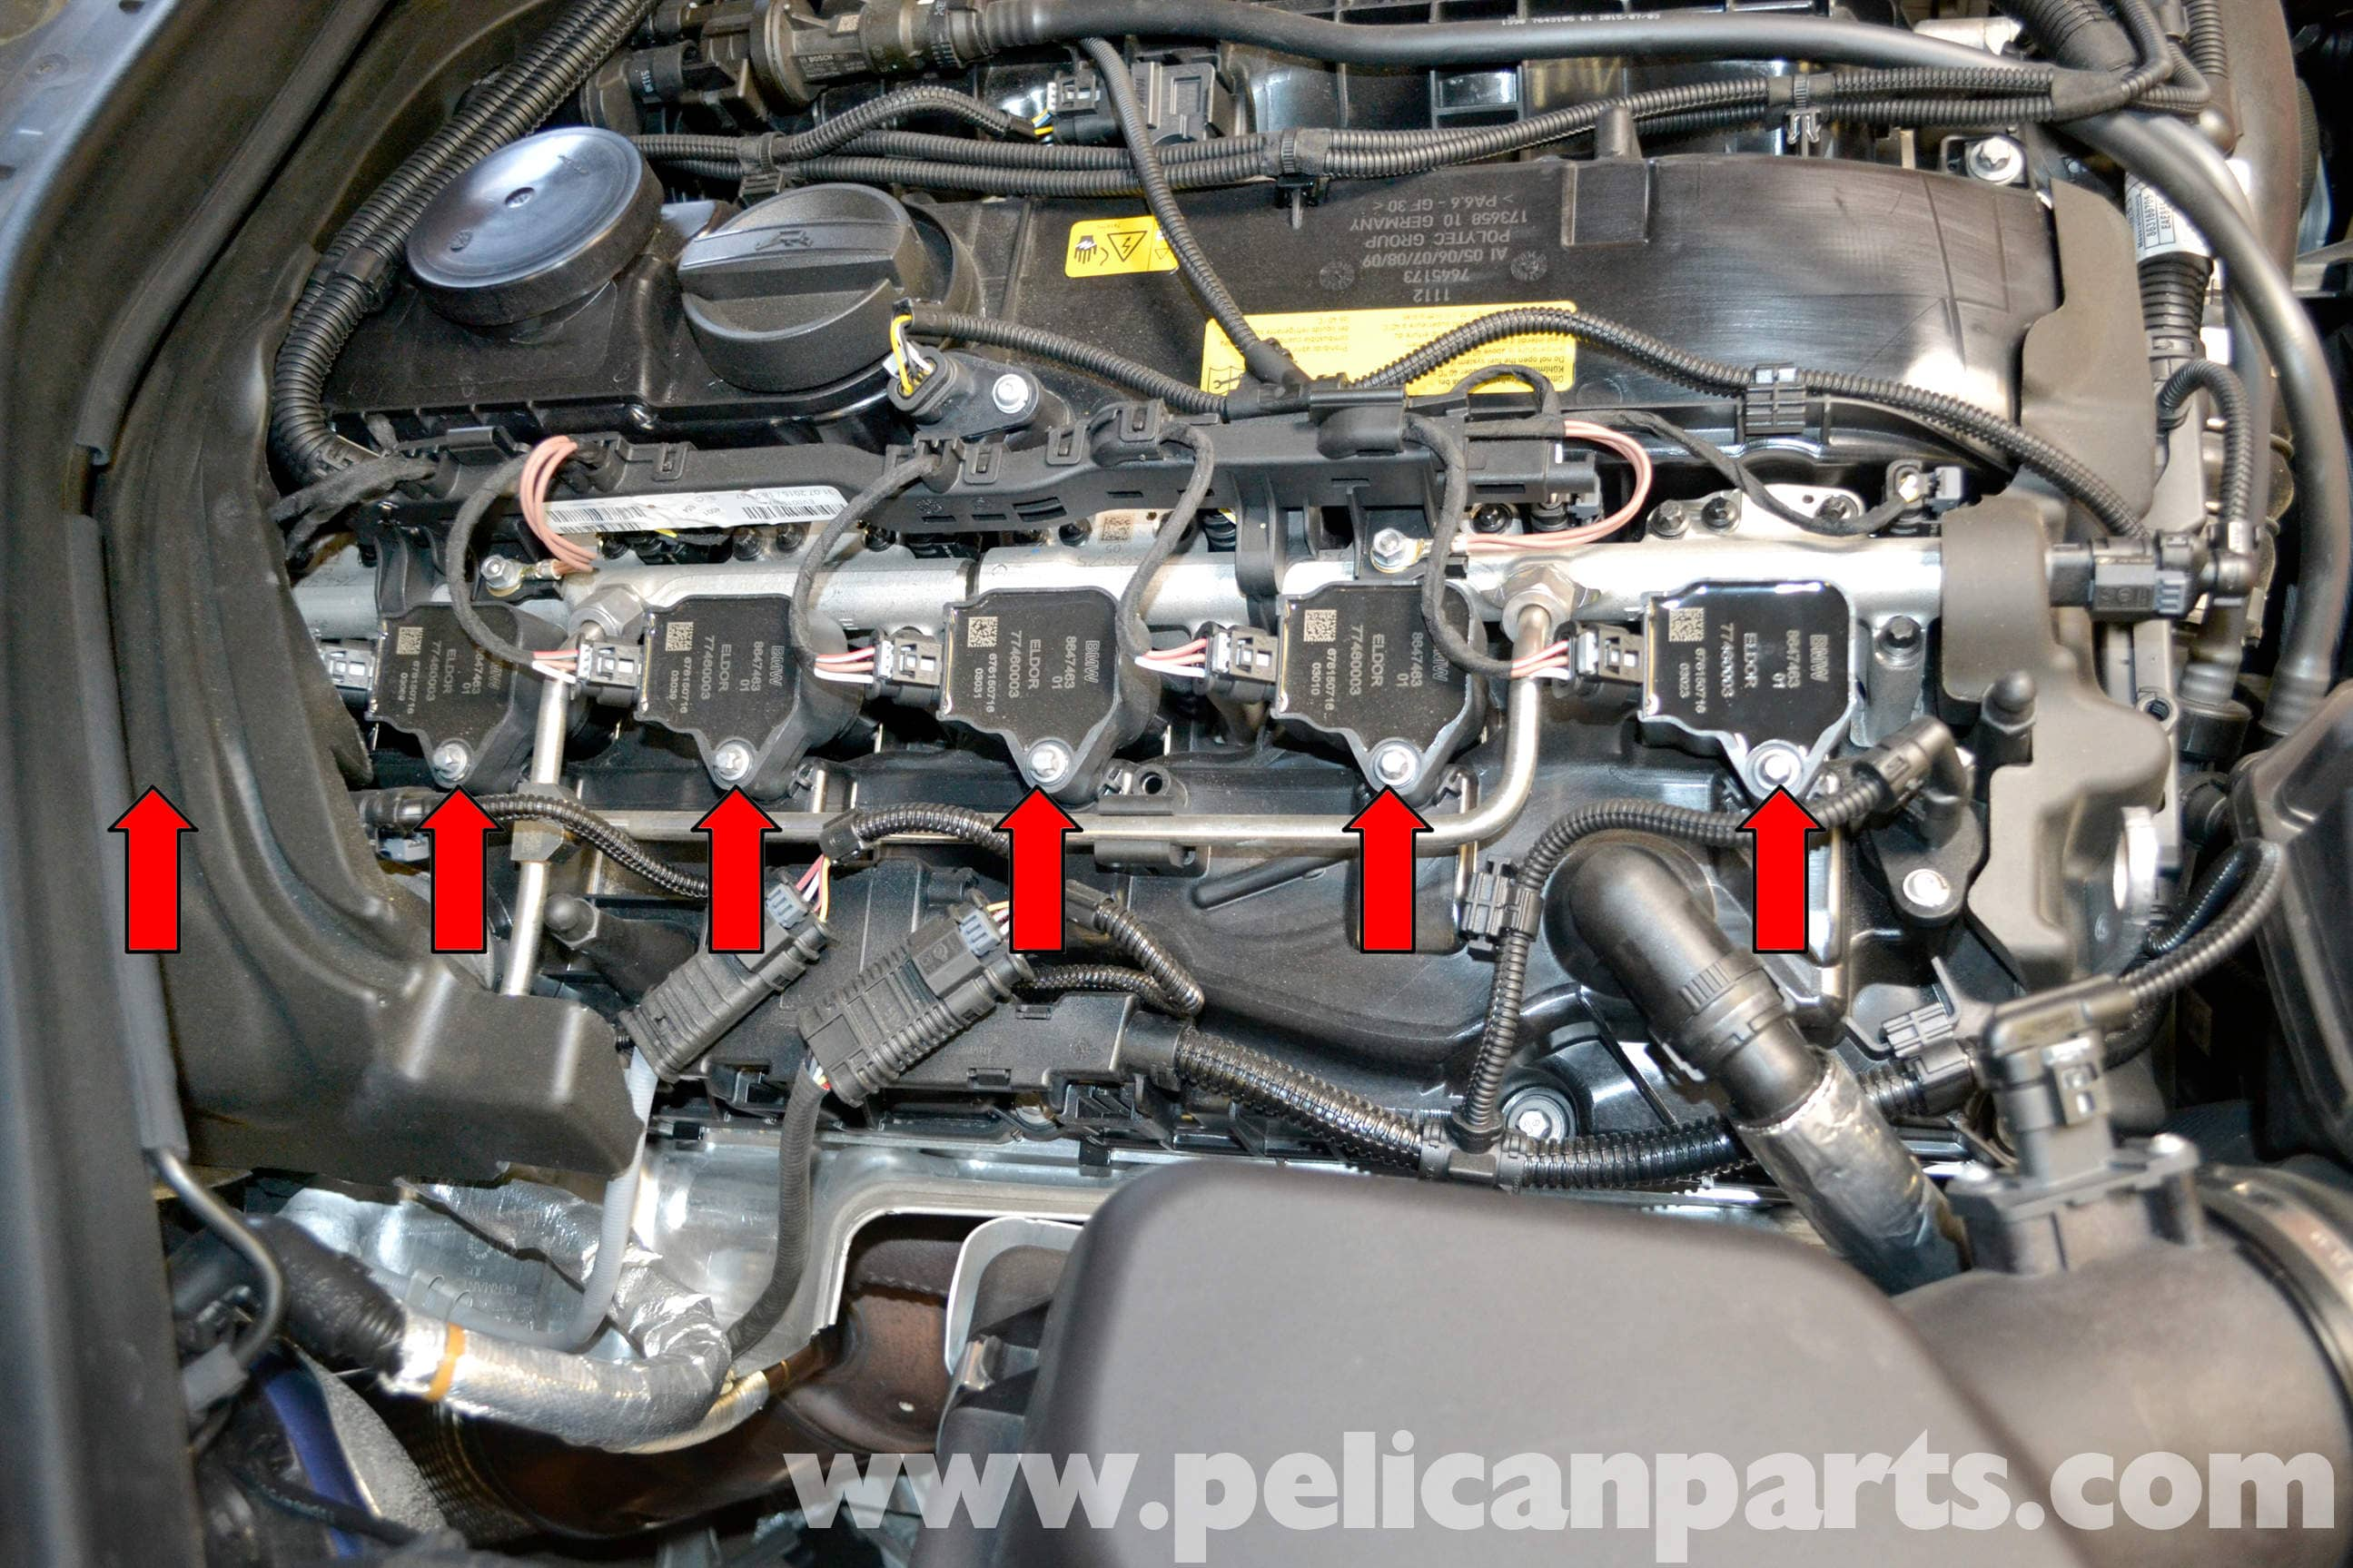 Pelican Parts Technical Article - BMW F30 3-Series - Spark